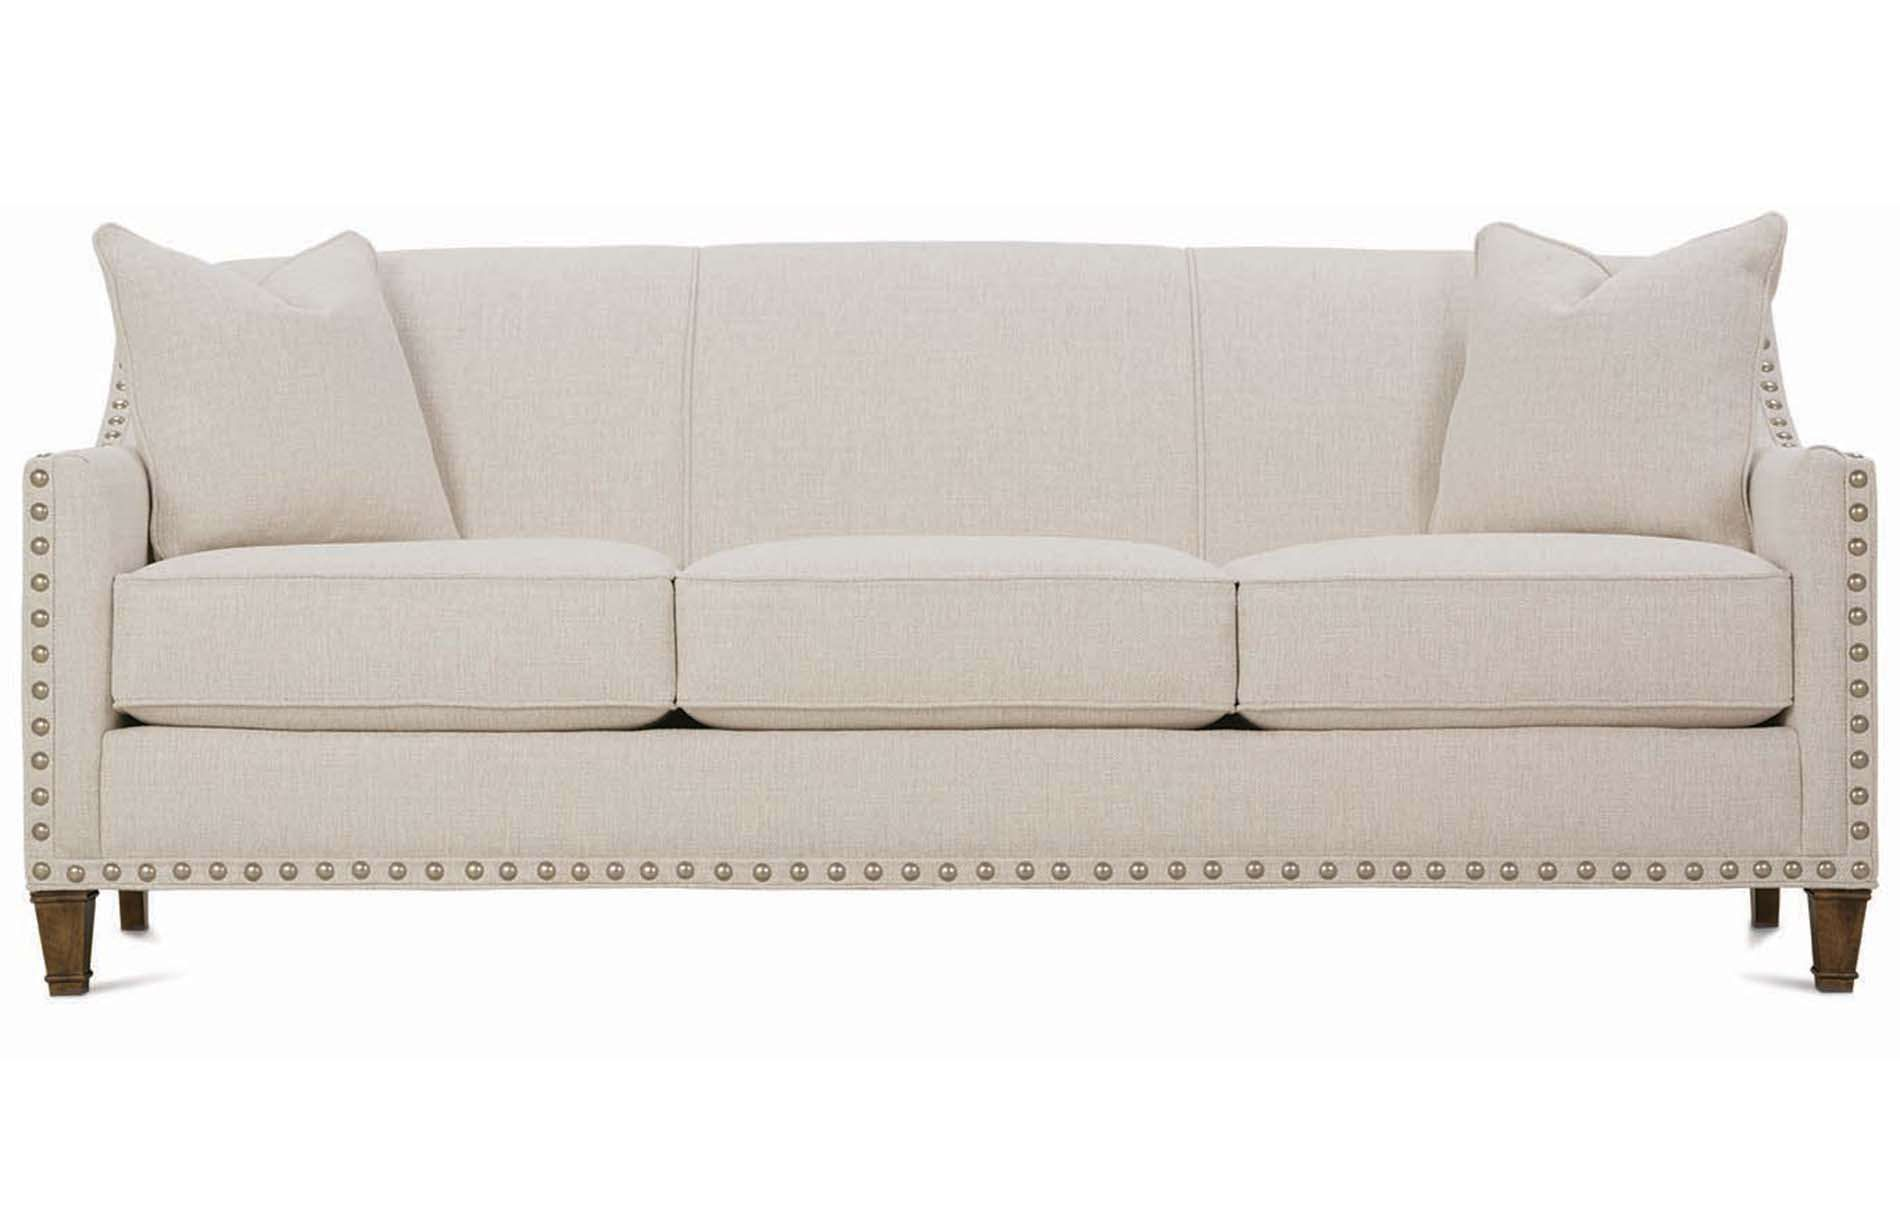 A Premiere Design From Rowe Furniture